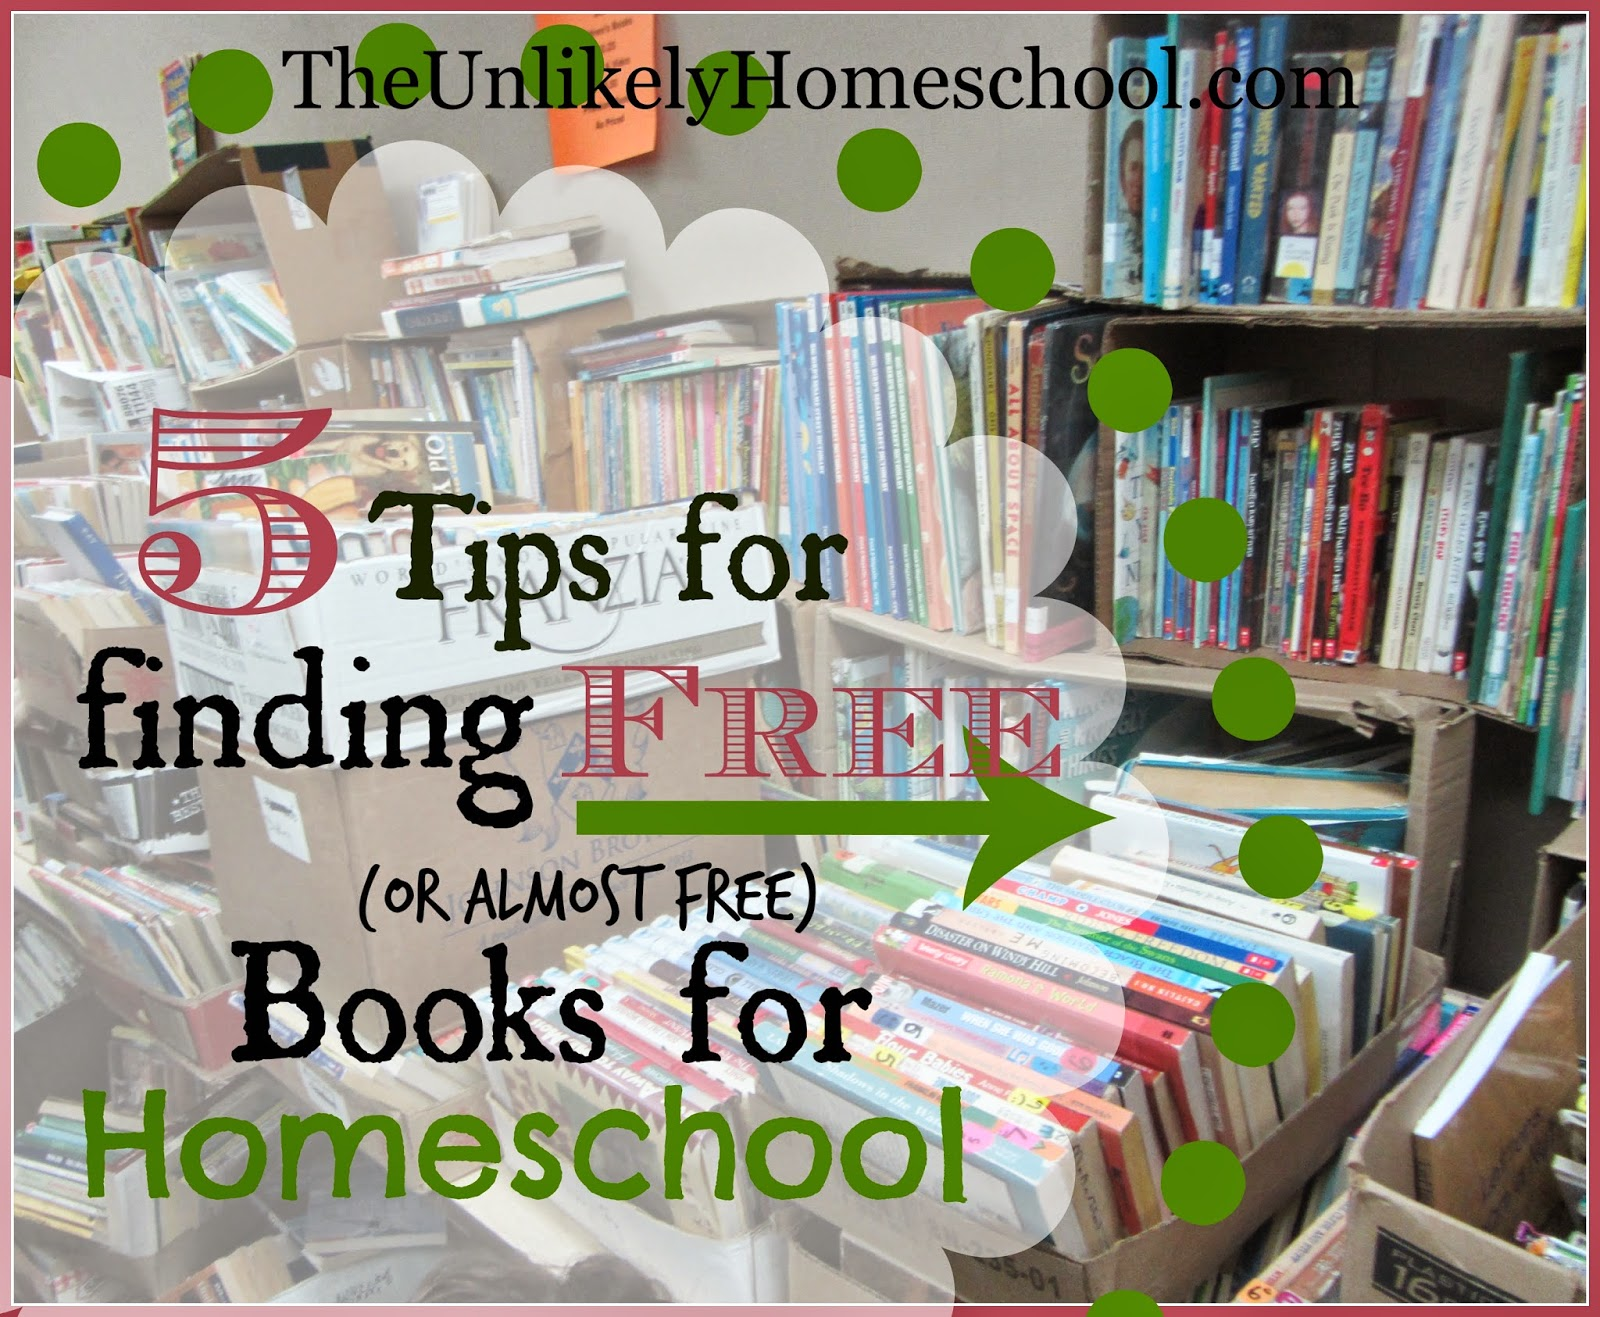 5 Tips for Finding FREE {or almost free} Books for Homeschool-The Unlikely Homeschool